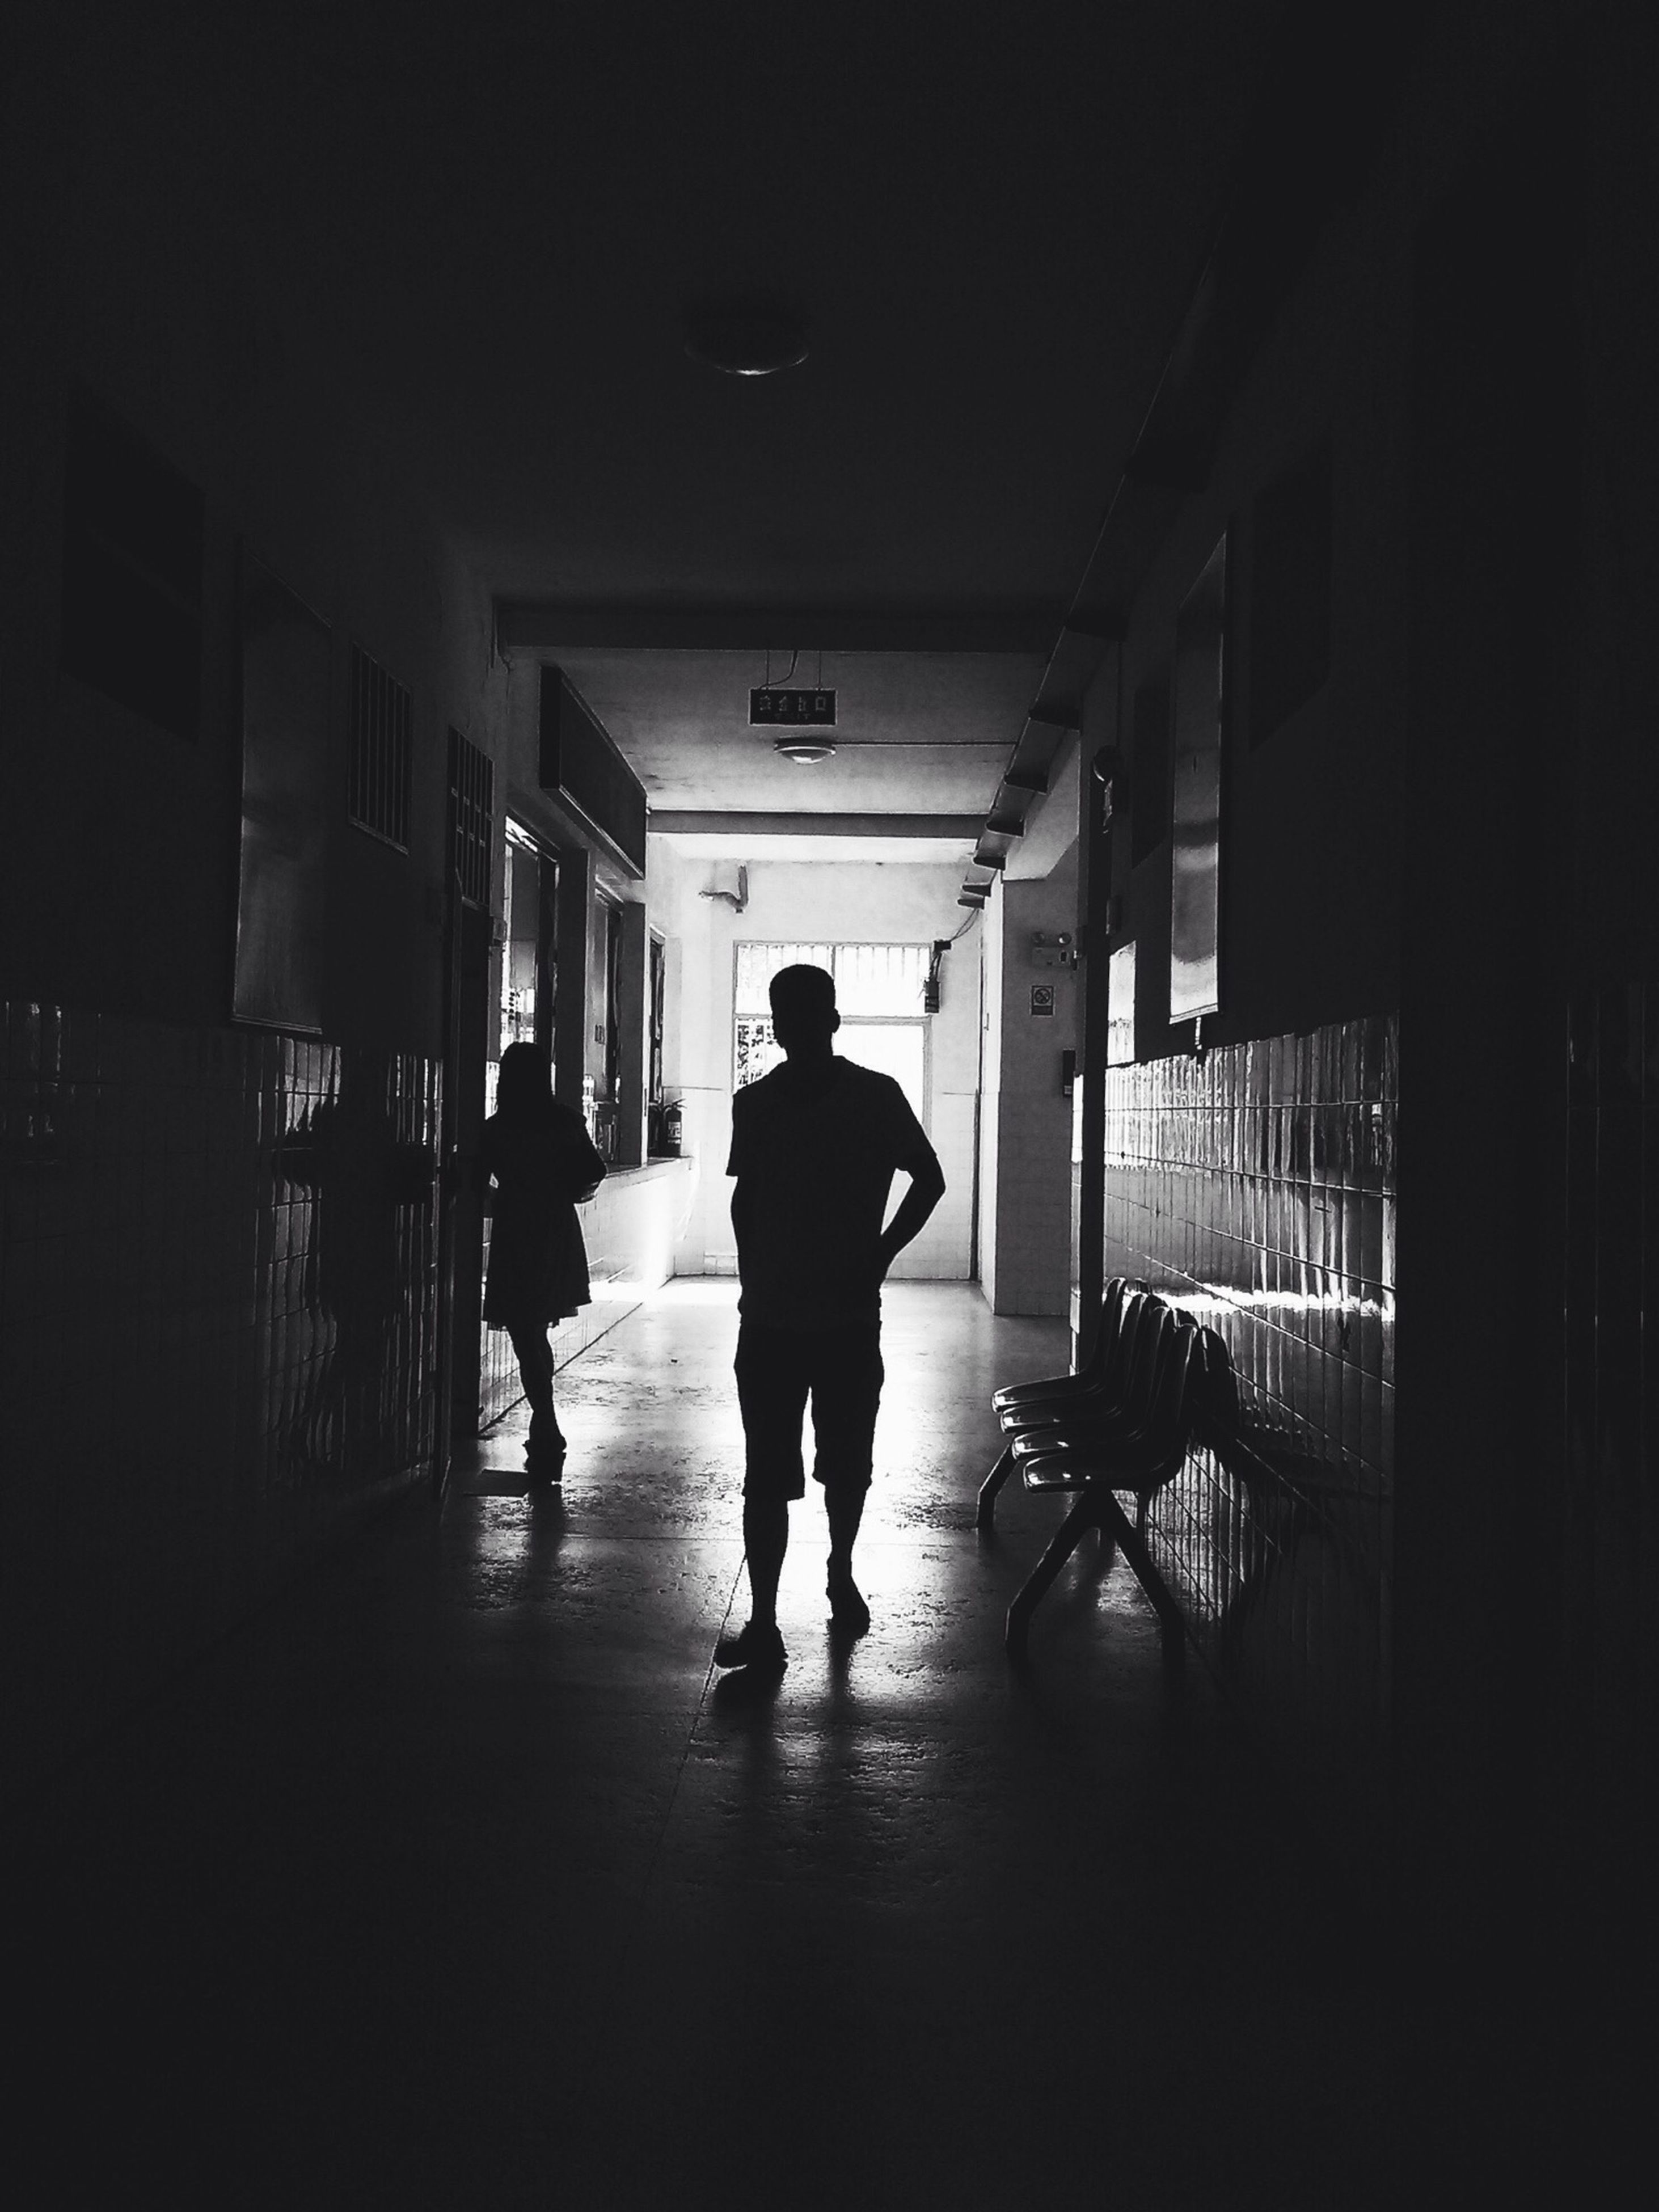 walking, architecture, full length, built structure, men, indoors, rear view, building exterior, lifestyles, city life, city, person, transportation, building, street, on the move, silhouette, illuminated